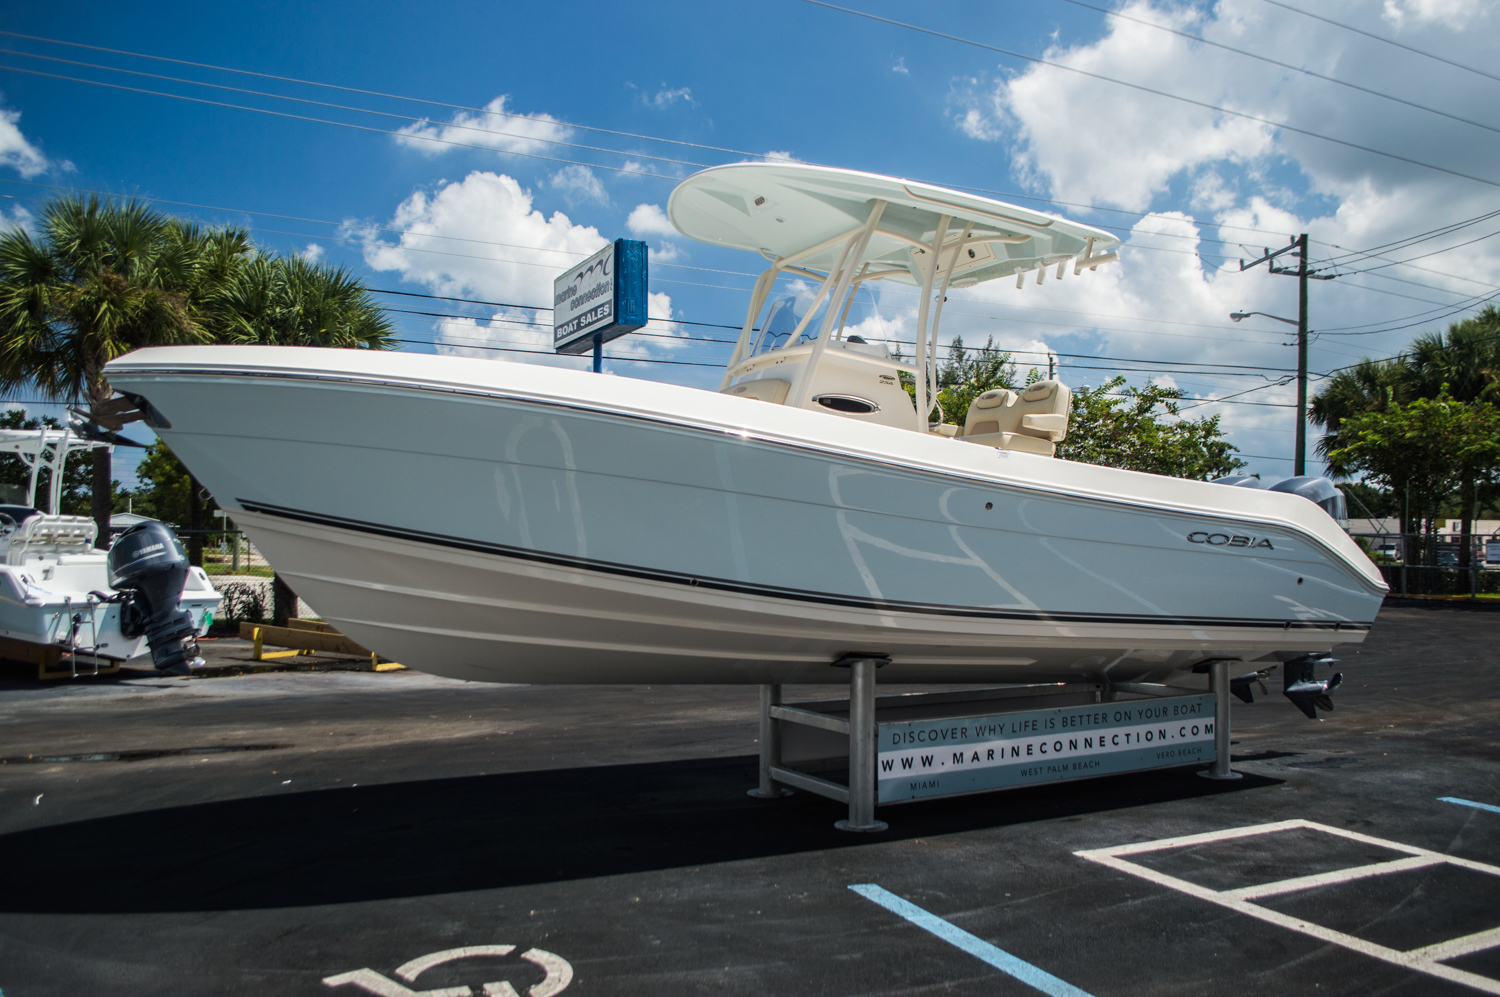 Thumbnail 3 for New 2015 Cobia 256 Center Console boat for sale in West Palm Beach, FL